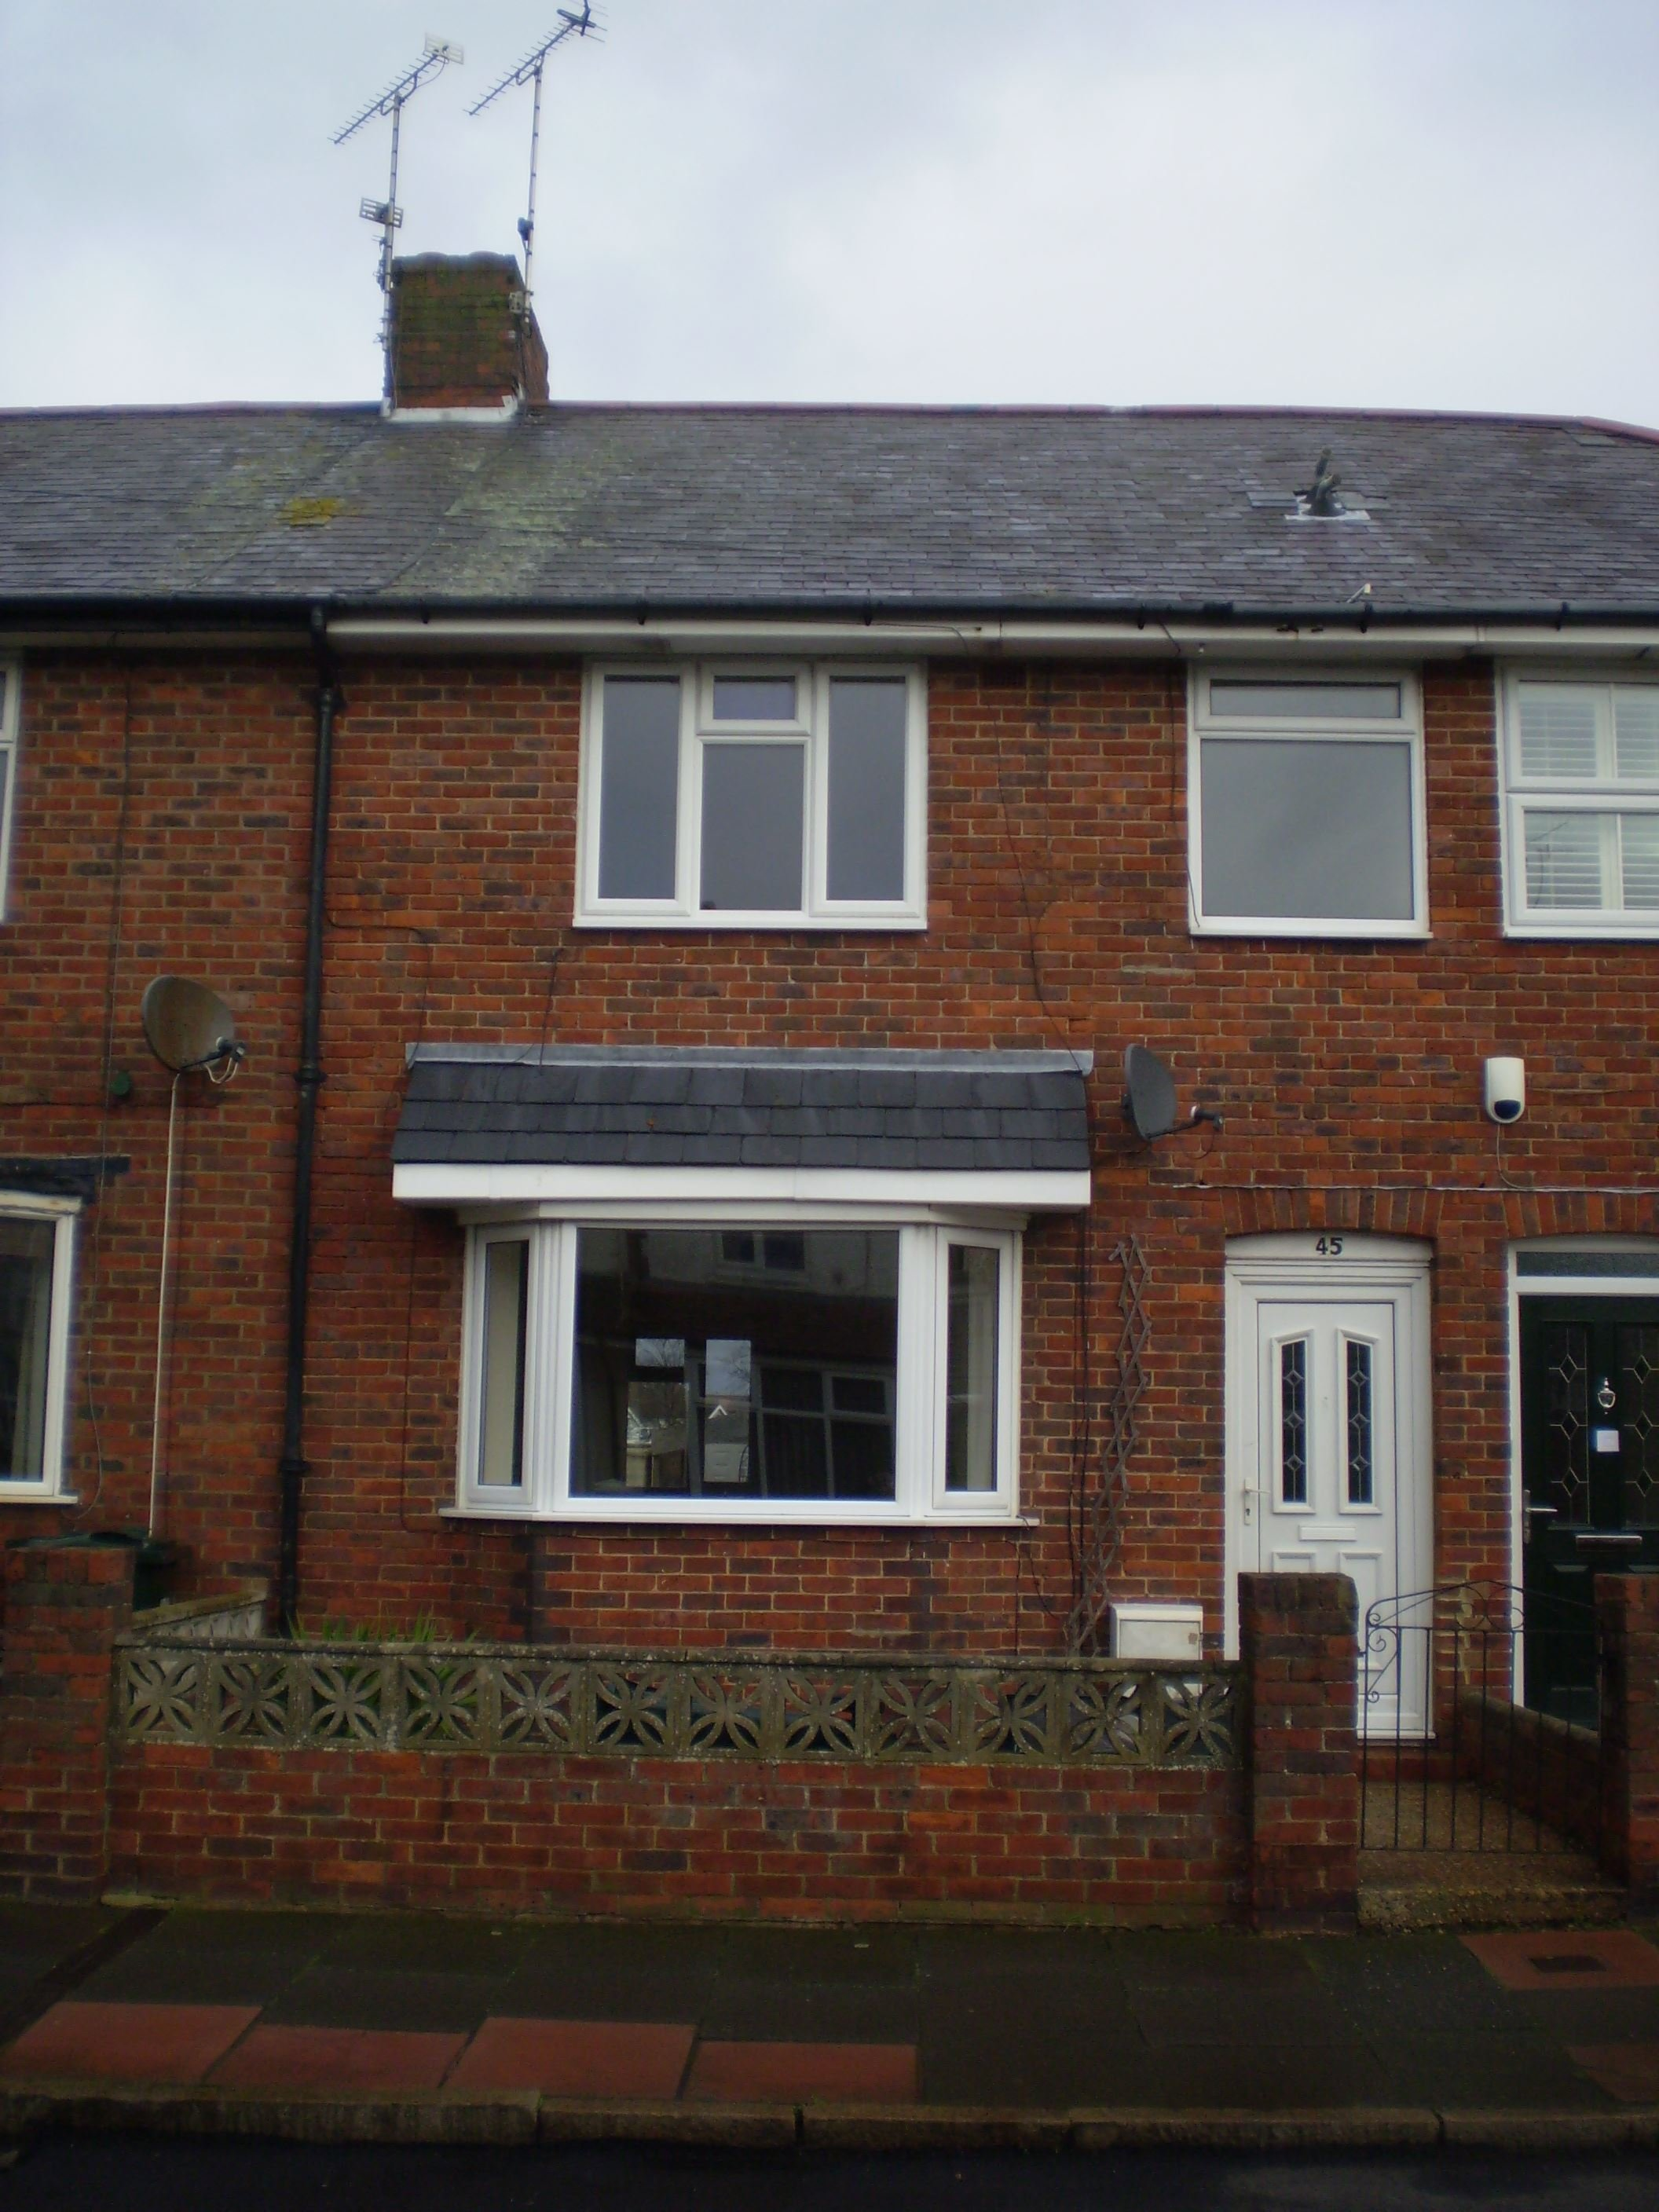 Best 3 Bedroom Terraced House To Rent Channel View Road Eastbourne Bn22 7Lw With Pictures